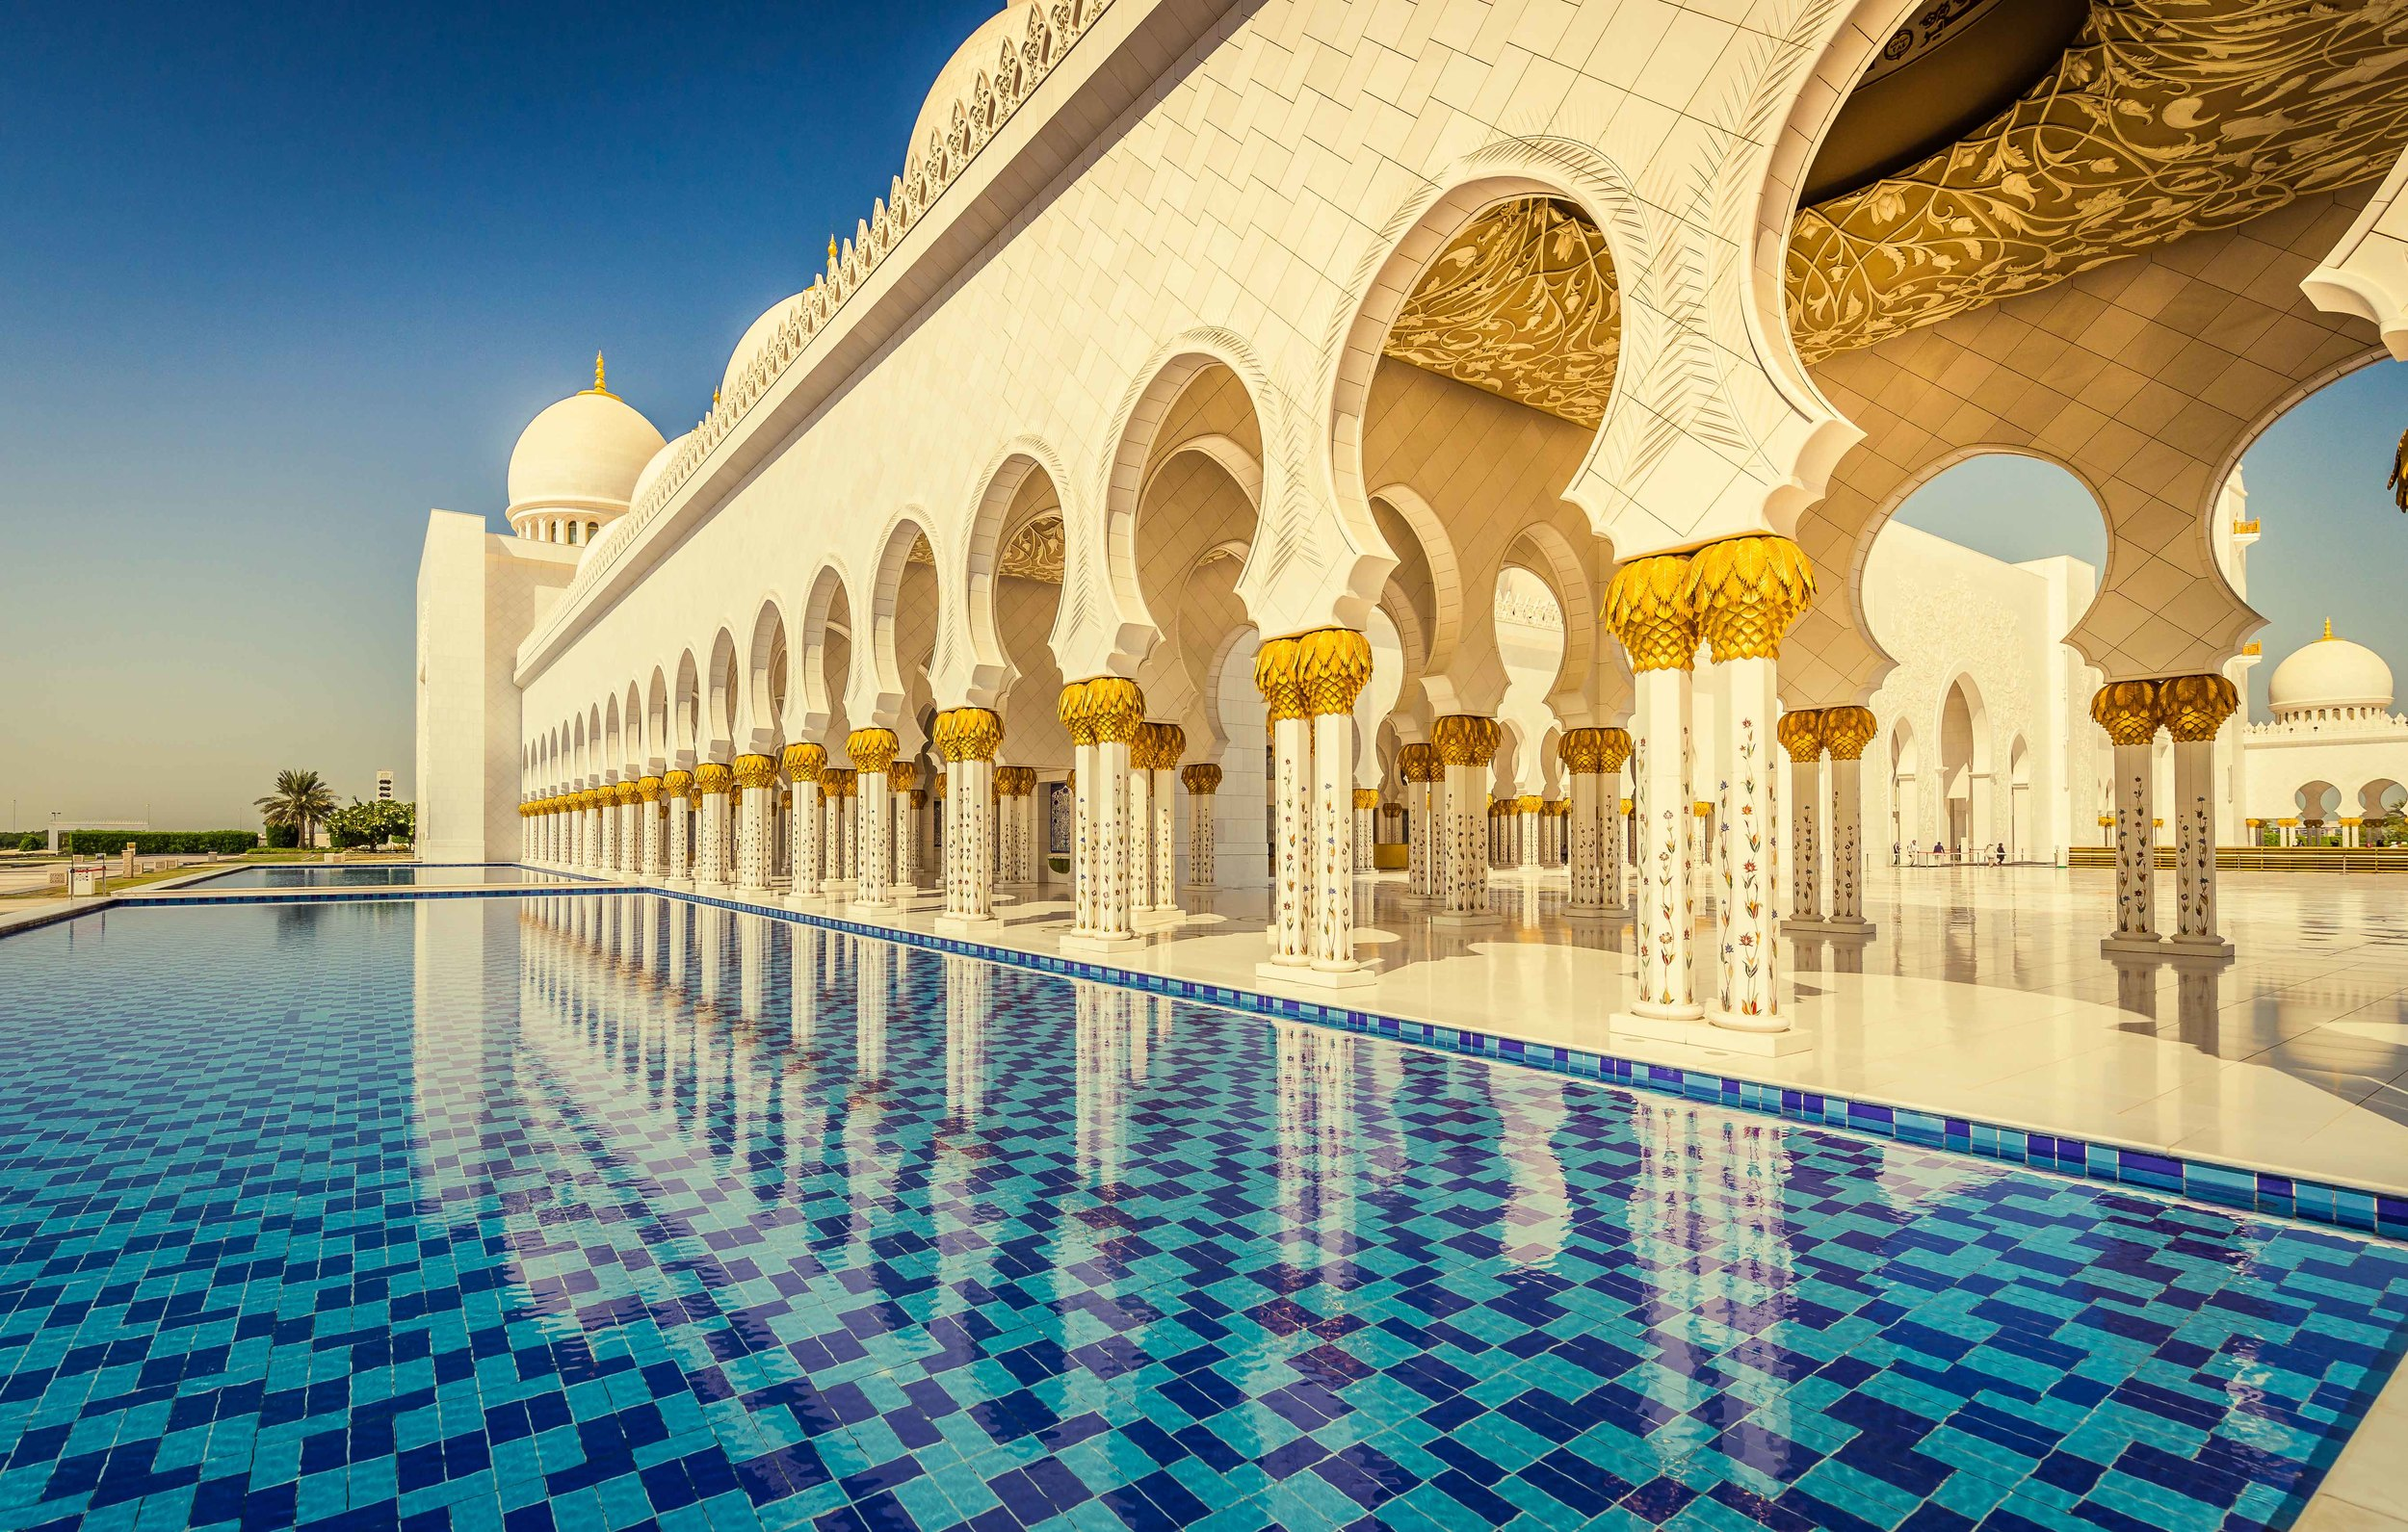 Sheikh Zayed Great Mosque - Abu Dhabi